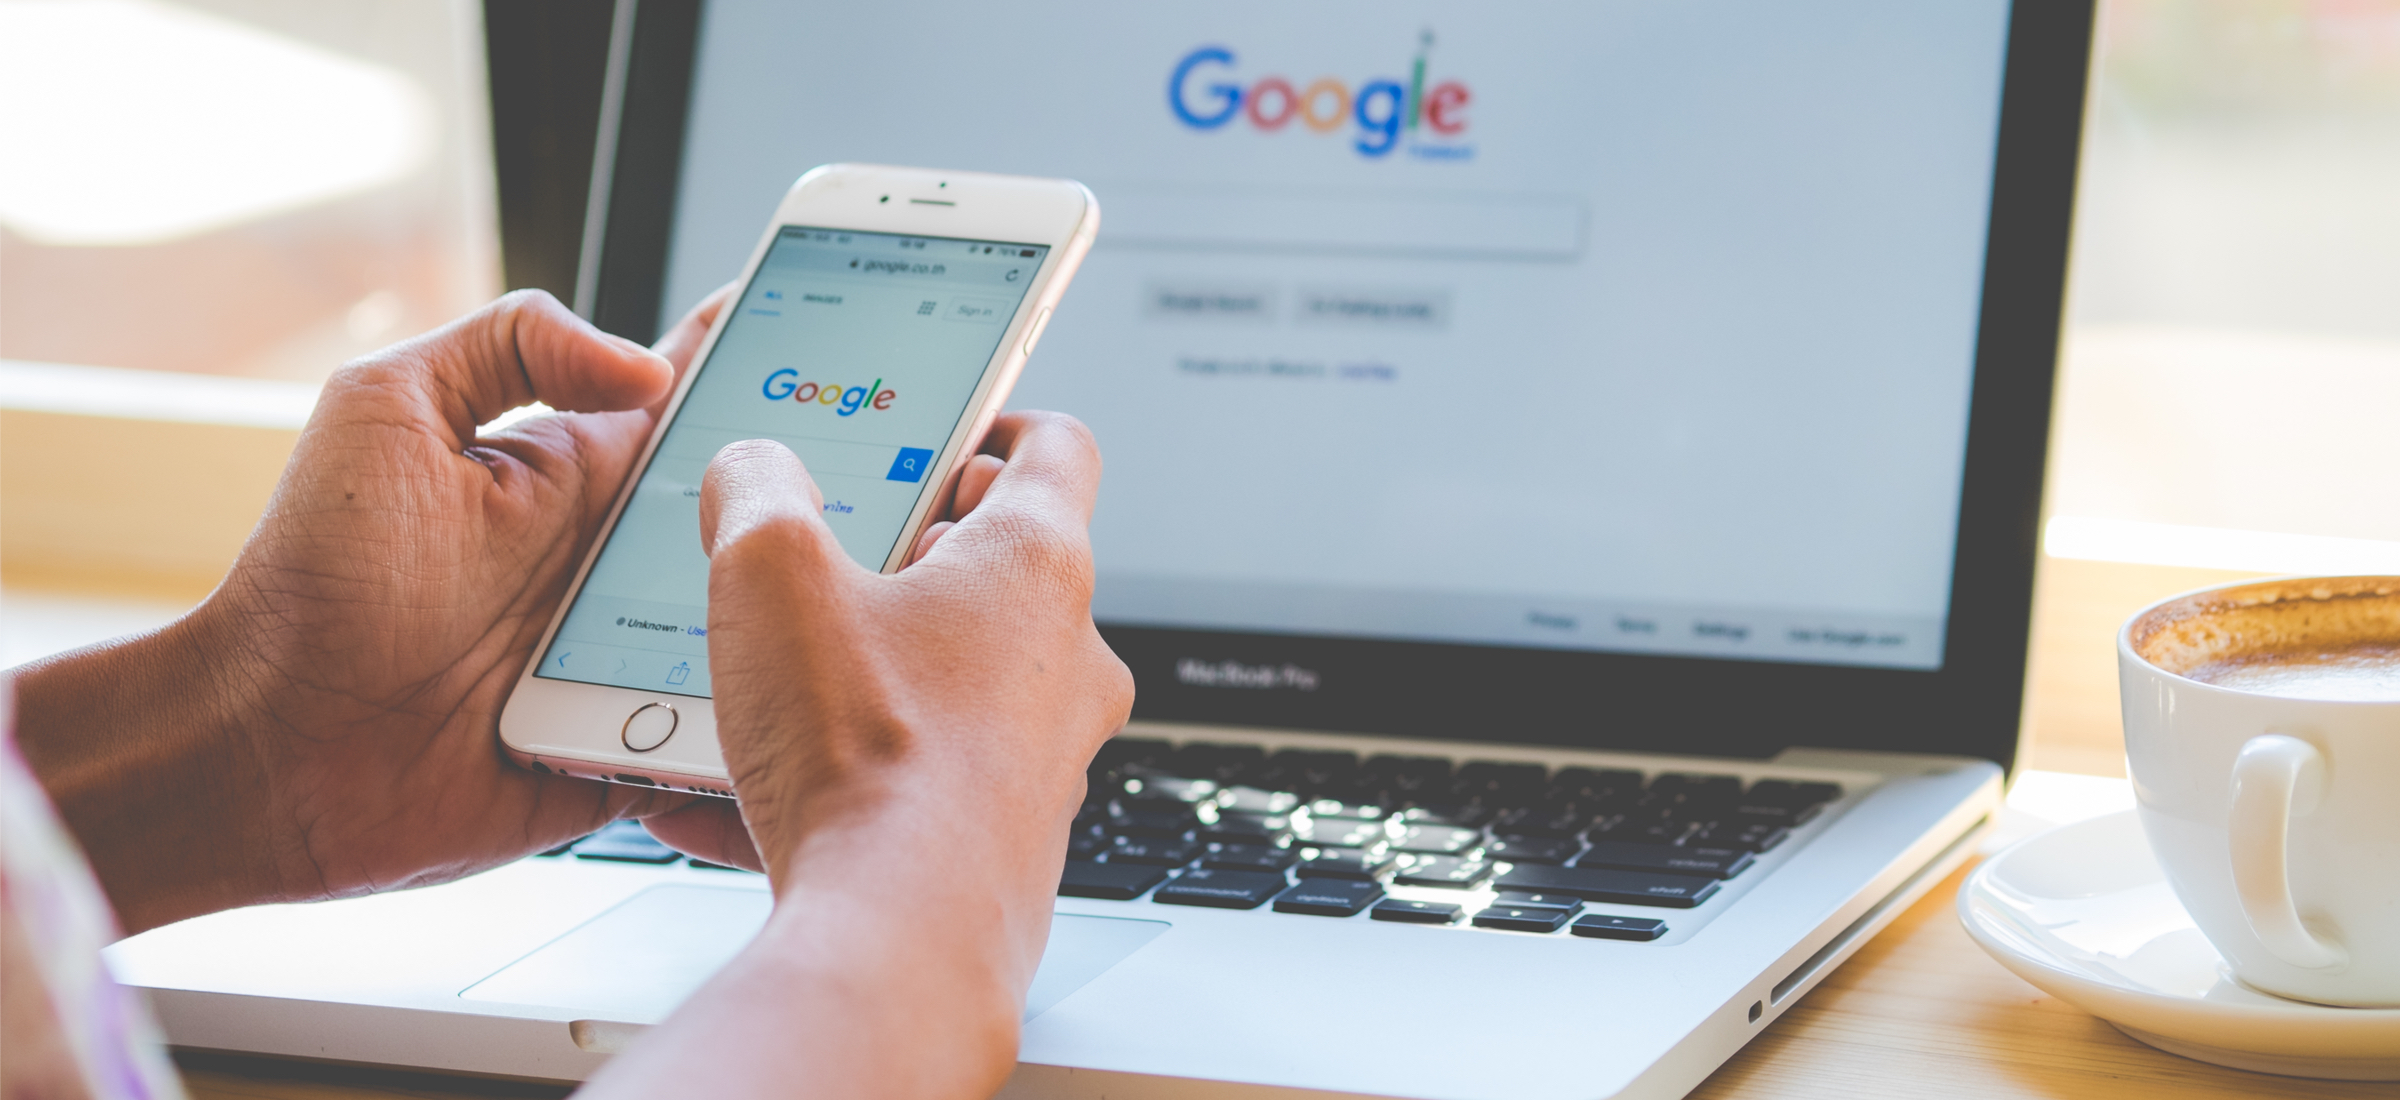 The lightweight Google search engine is now available. This is how Google Go works and looks